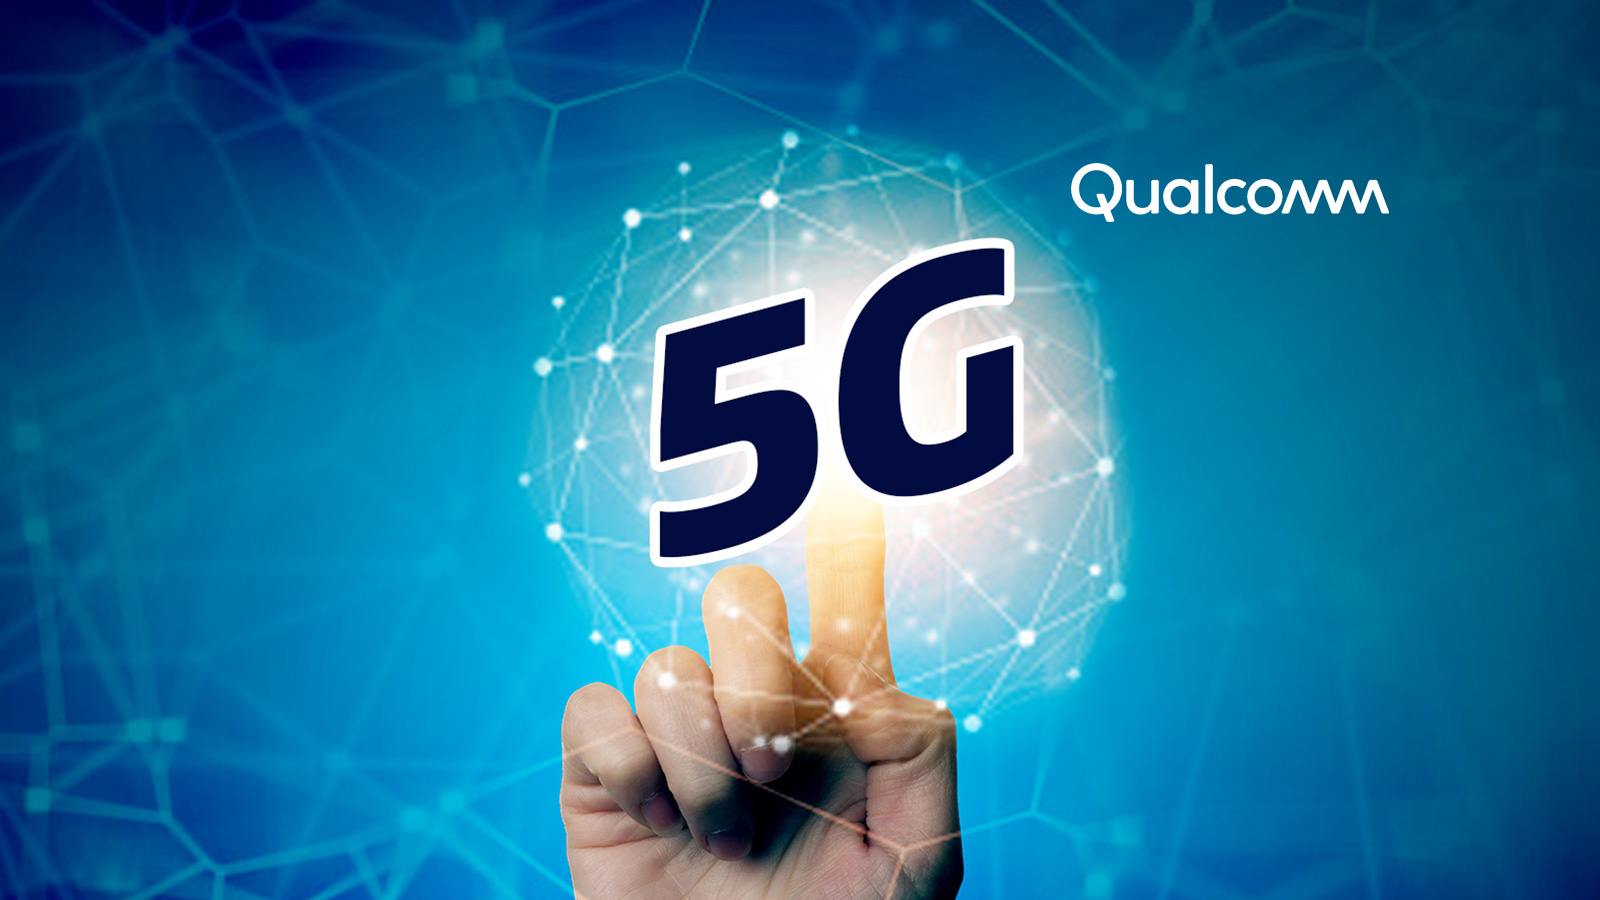 Qualcomm and EE Bring 5G to the UK with the Launch of the First Commercial 5G Service